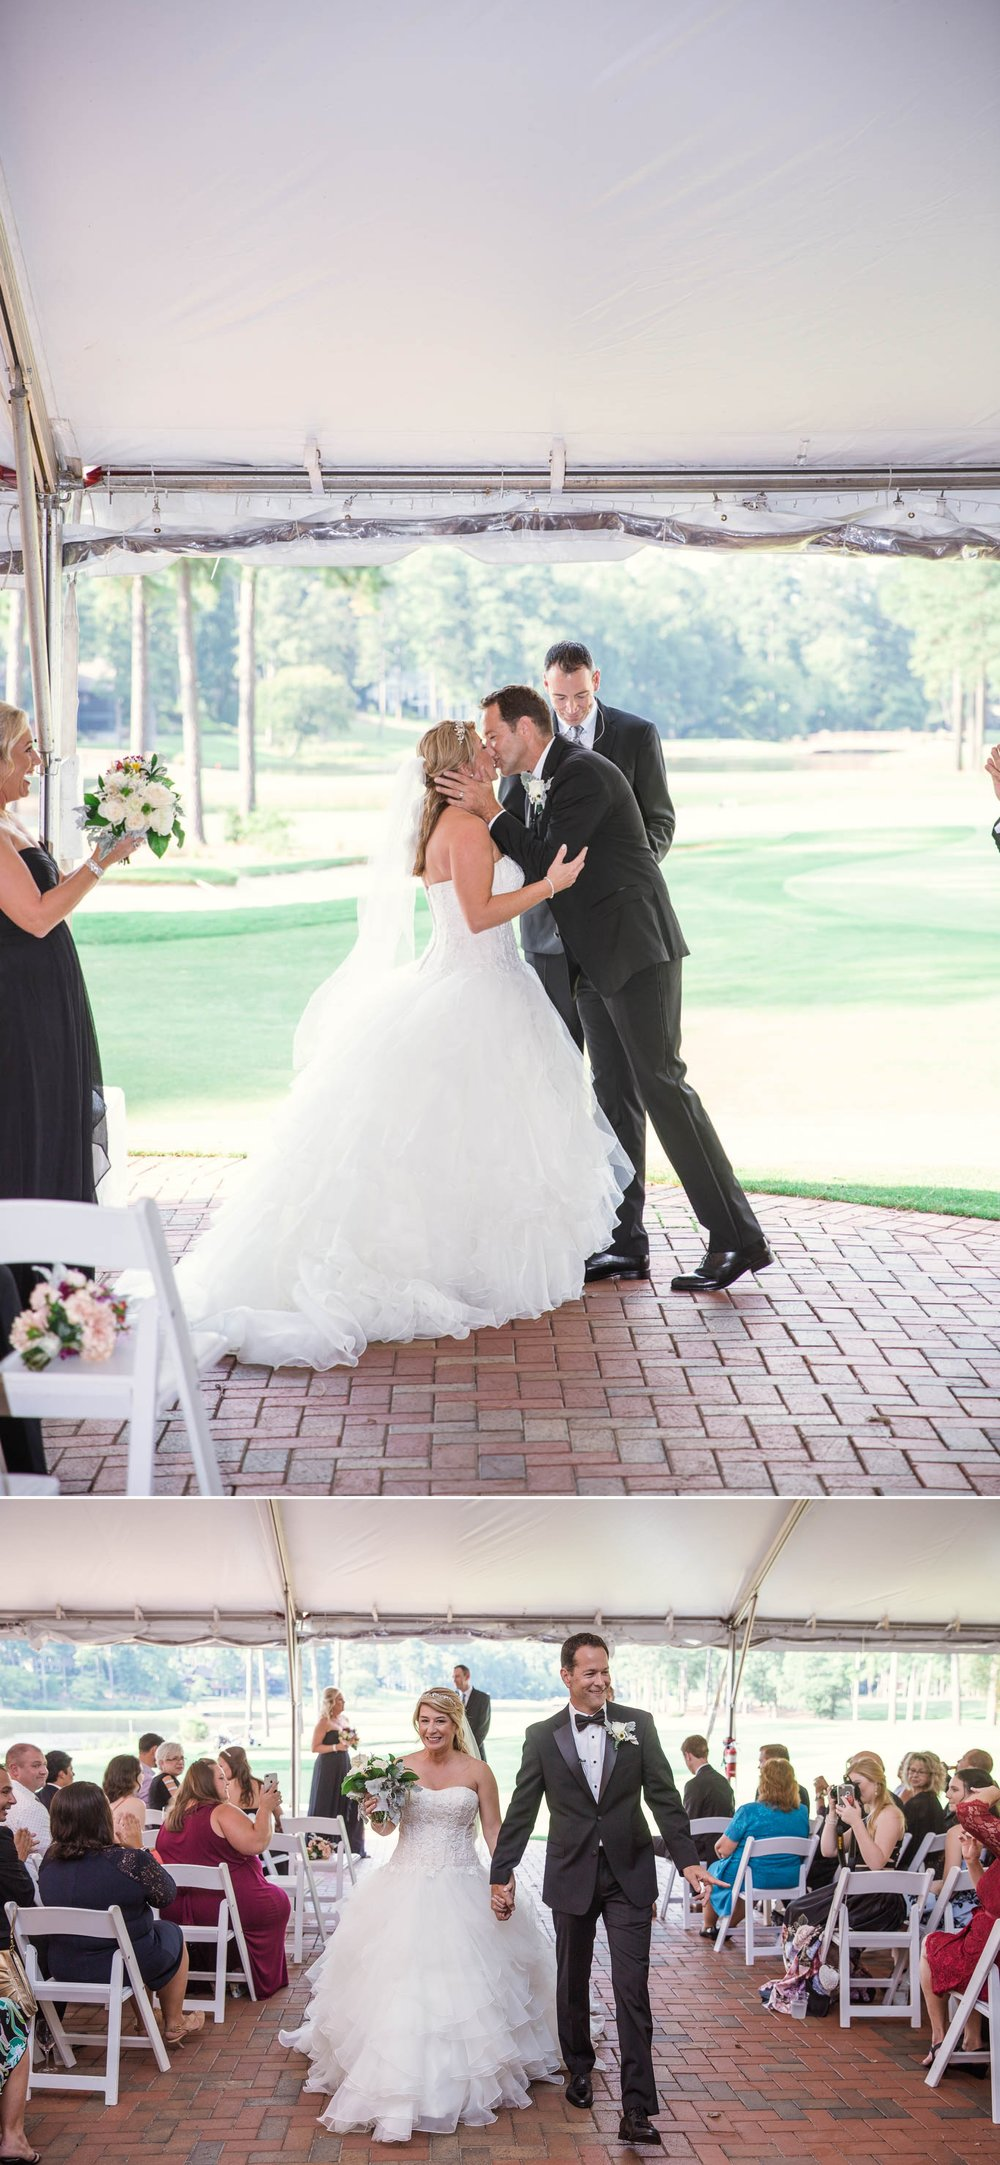 First Kiss - Dona + Doug - MacGregor Downs Country Club in Cary, NC - Raleigh Wedding Photographer